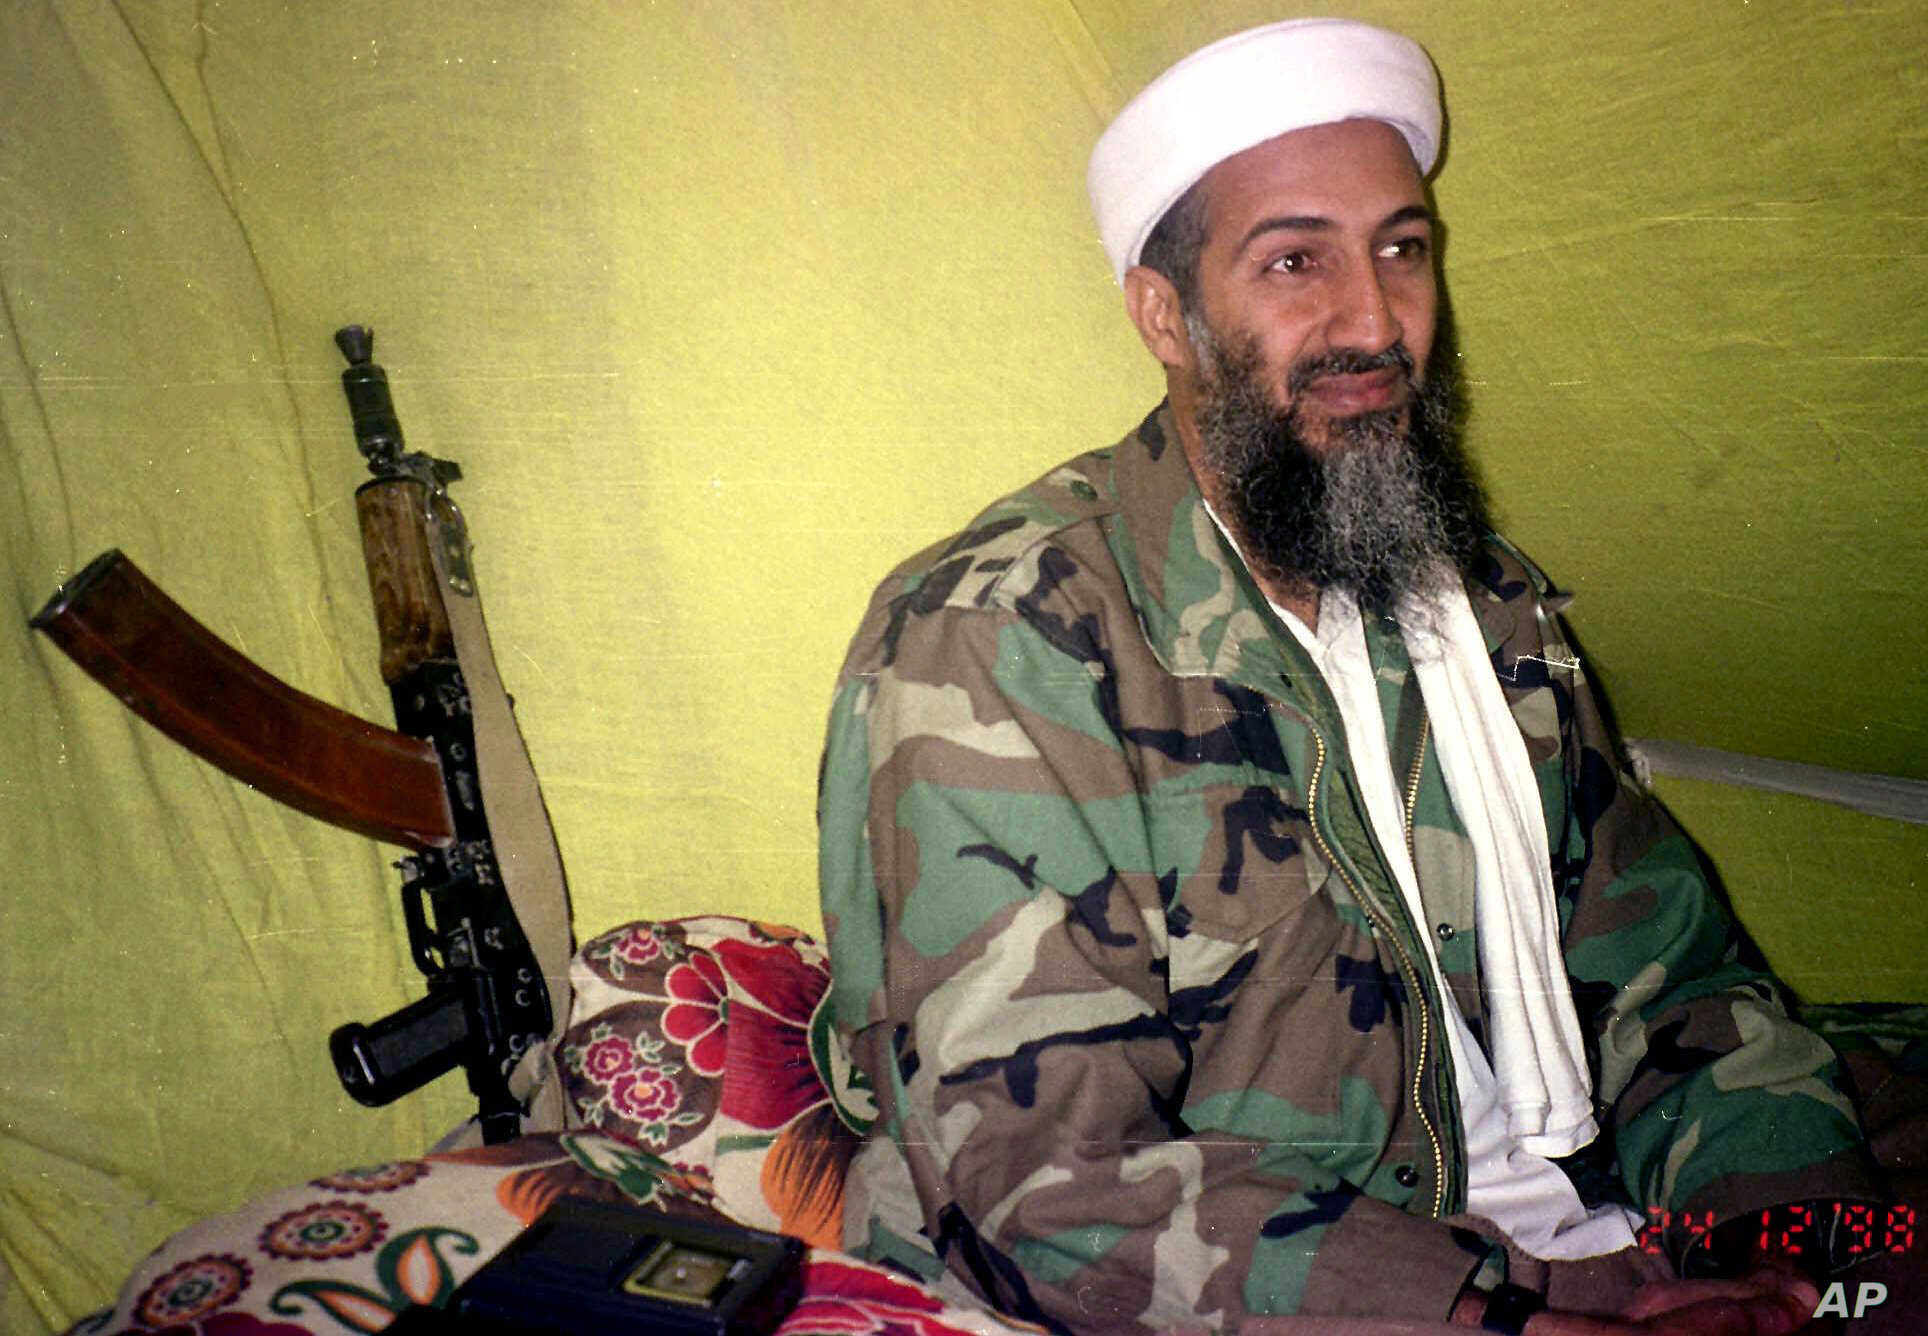 New 9/11 Exhibit Stages Hunt for Osama Bin Laden | Voice of America -  English